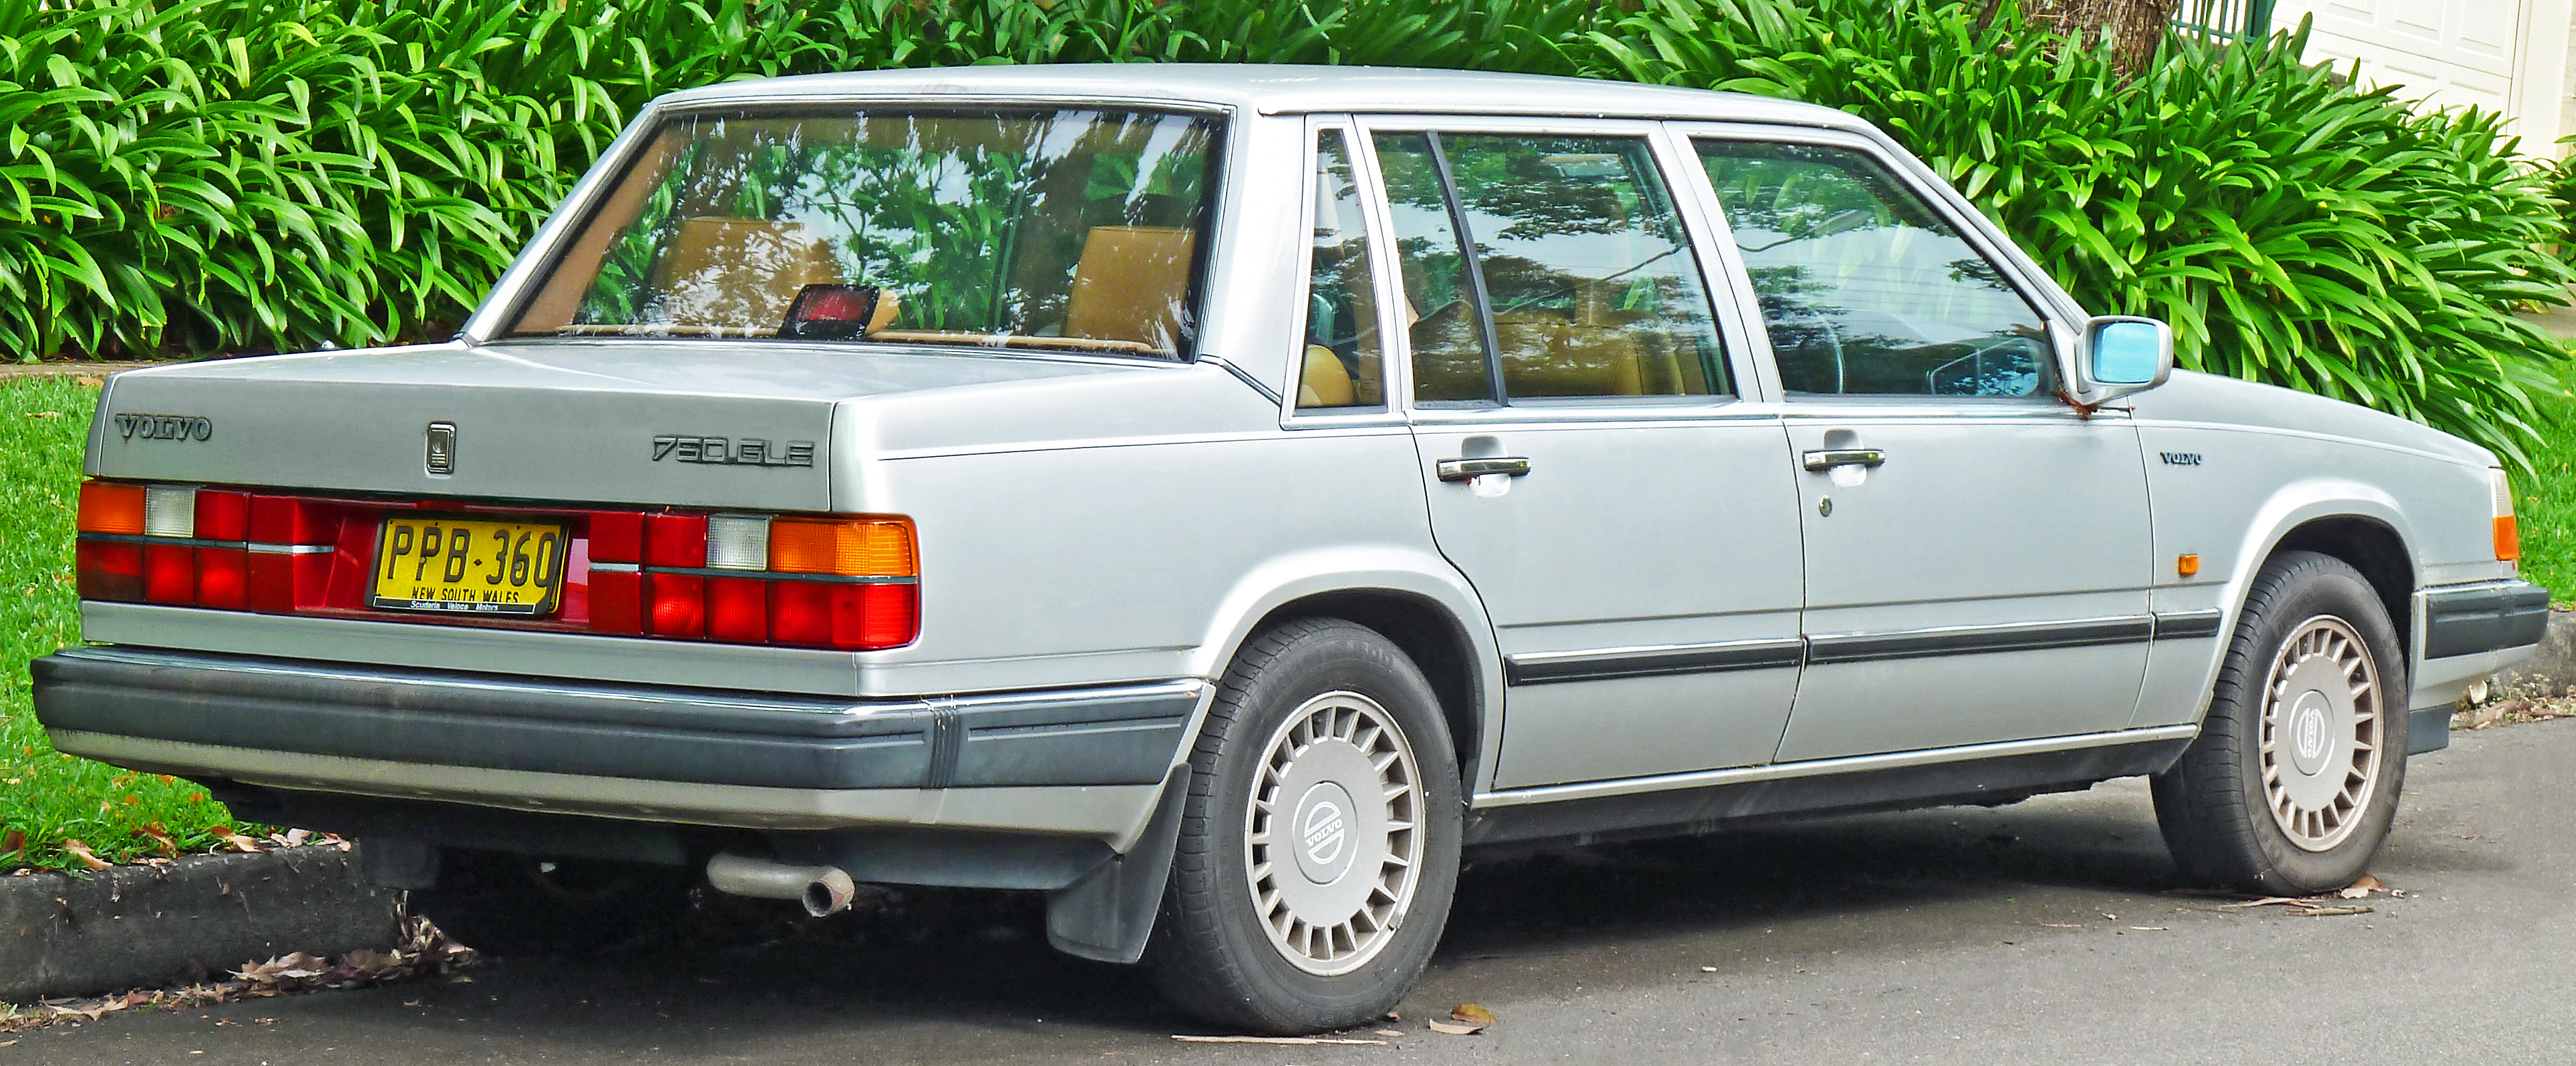 Volvo 740 1989 Wiring Diagrams Car Photo Diagram Related Video Of